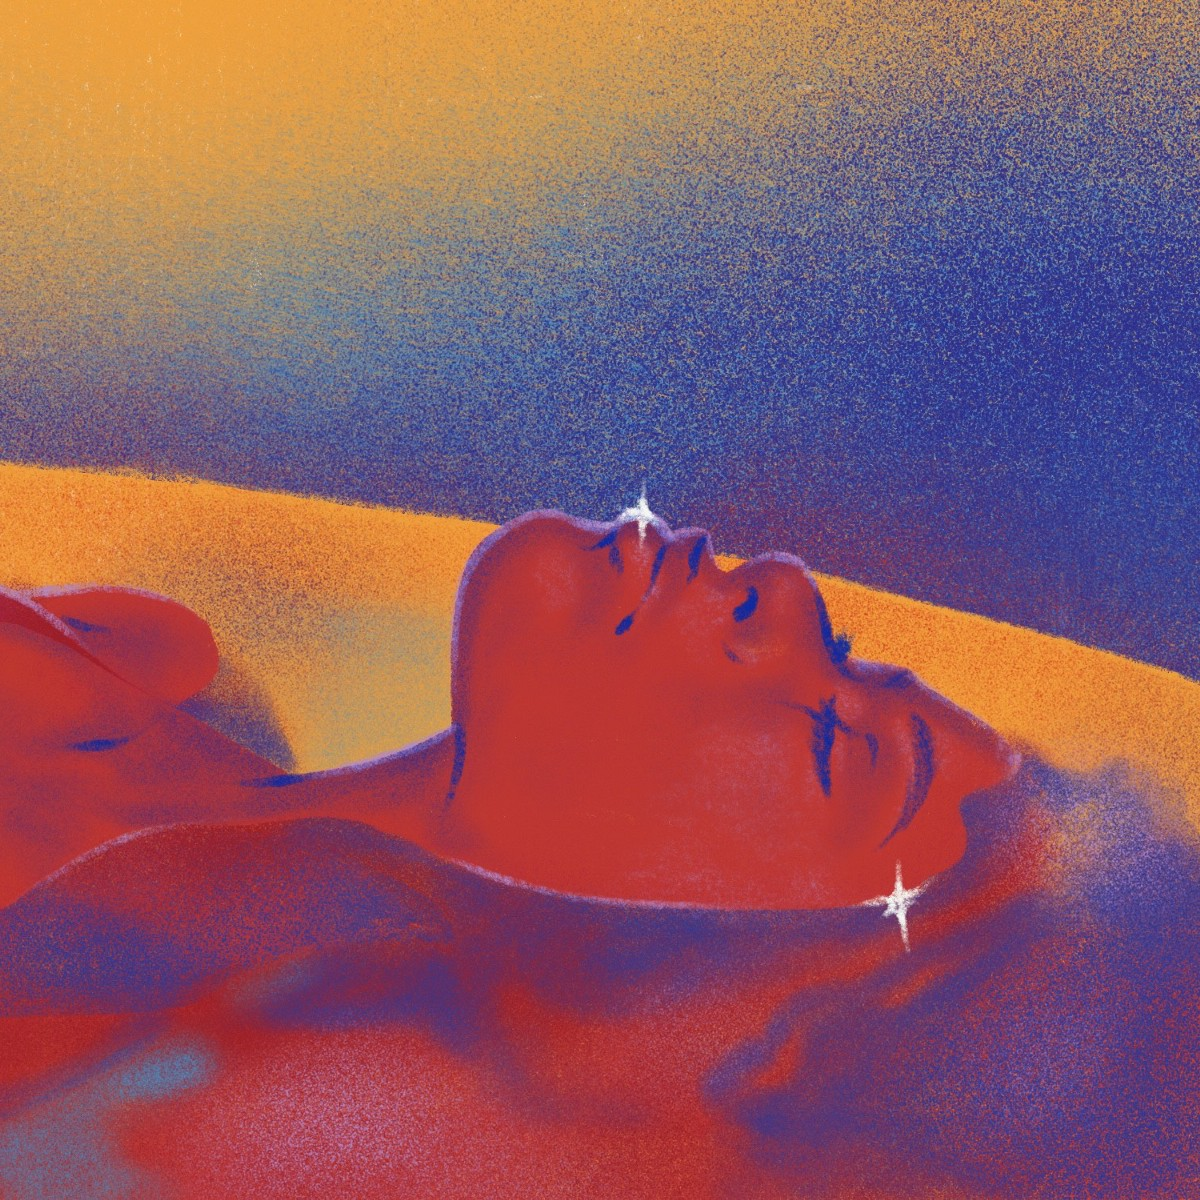 Searching for Healing in a Sensory Deprivation Tank